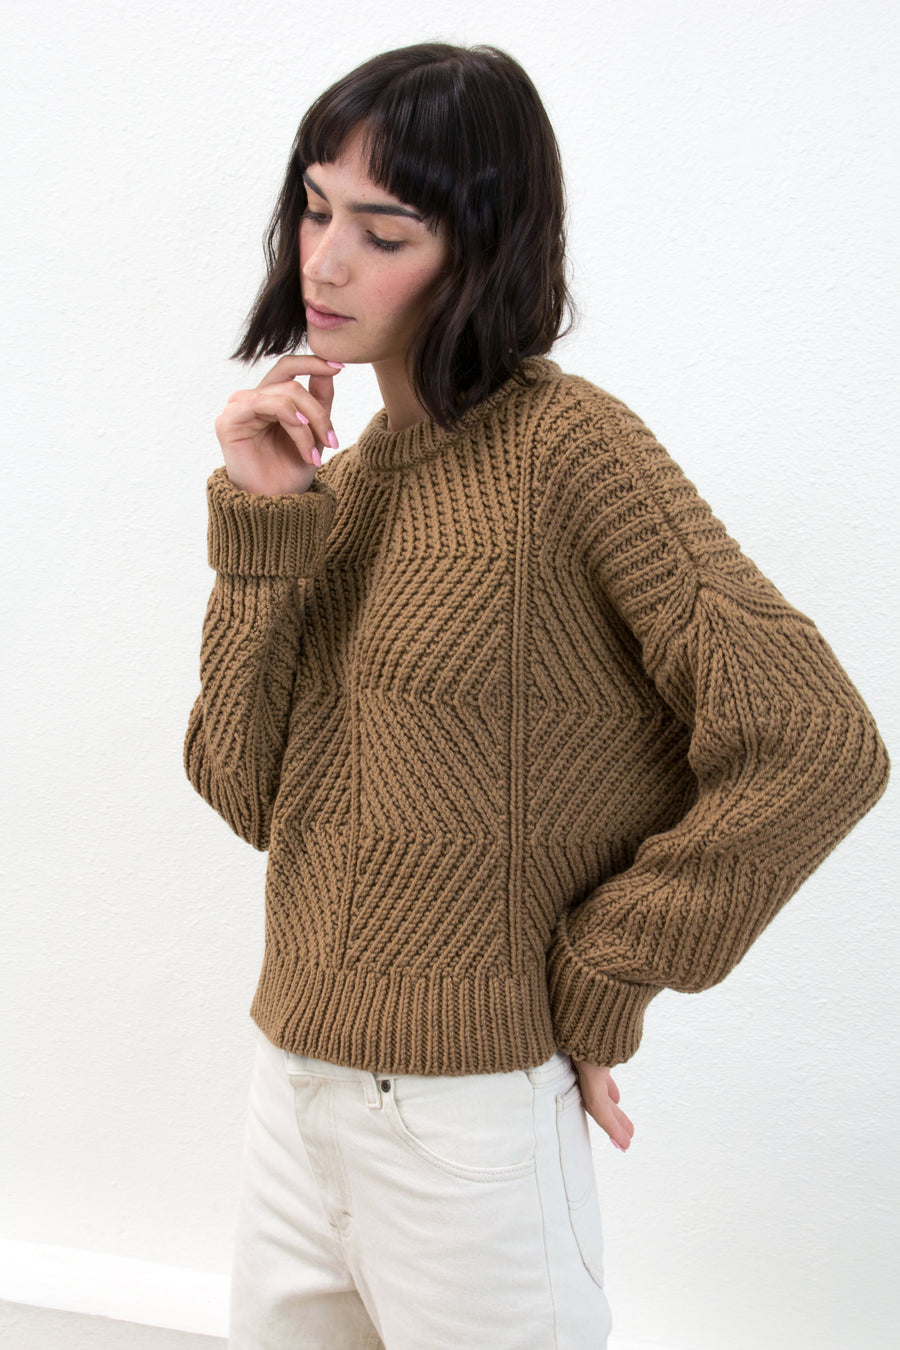 Caramel Bevel Sweater